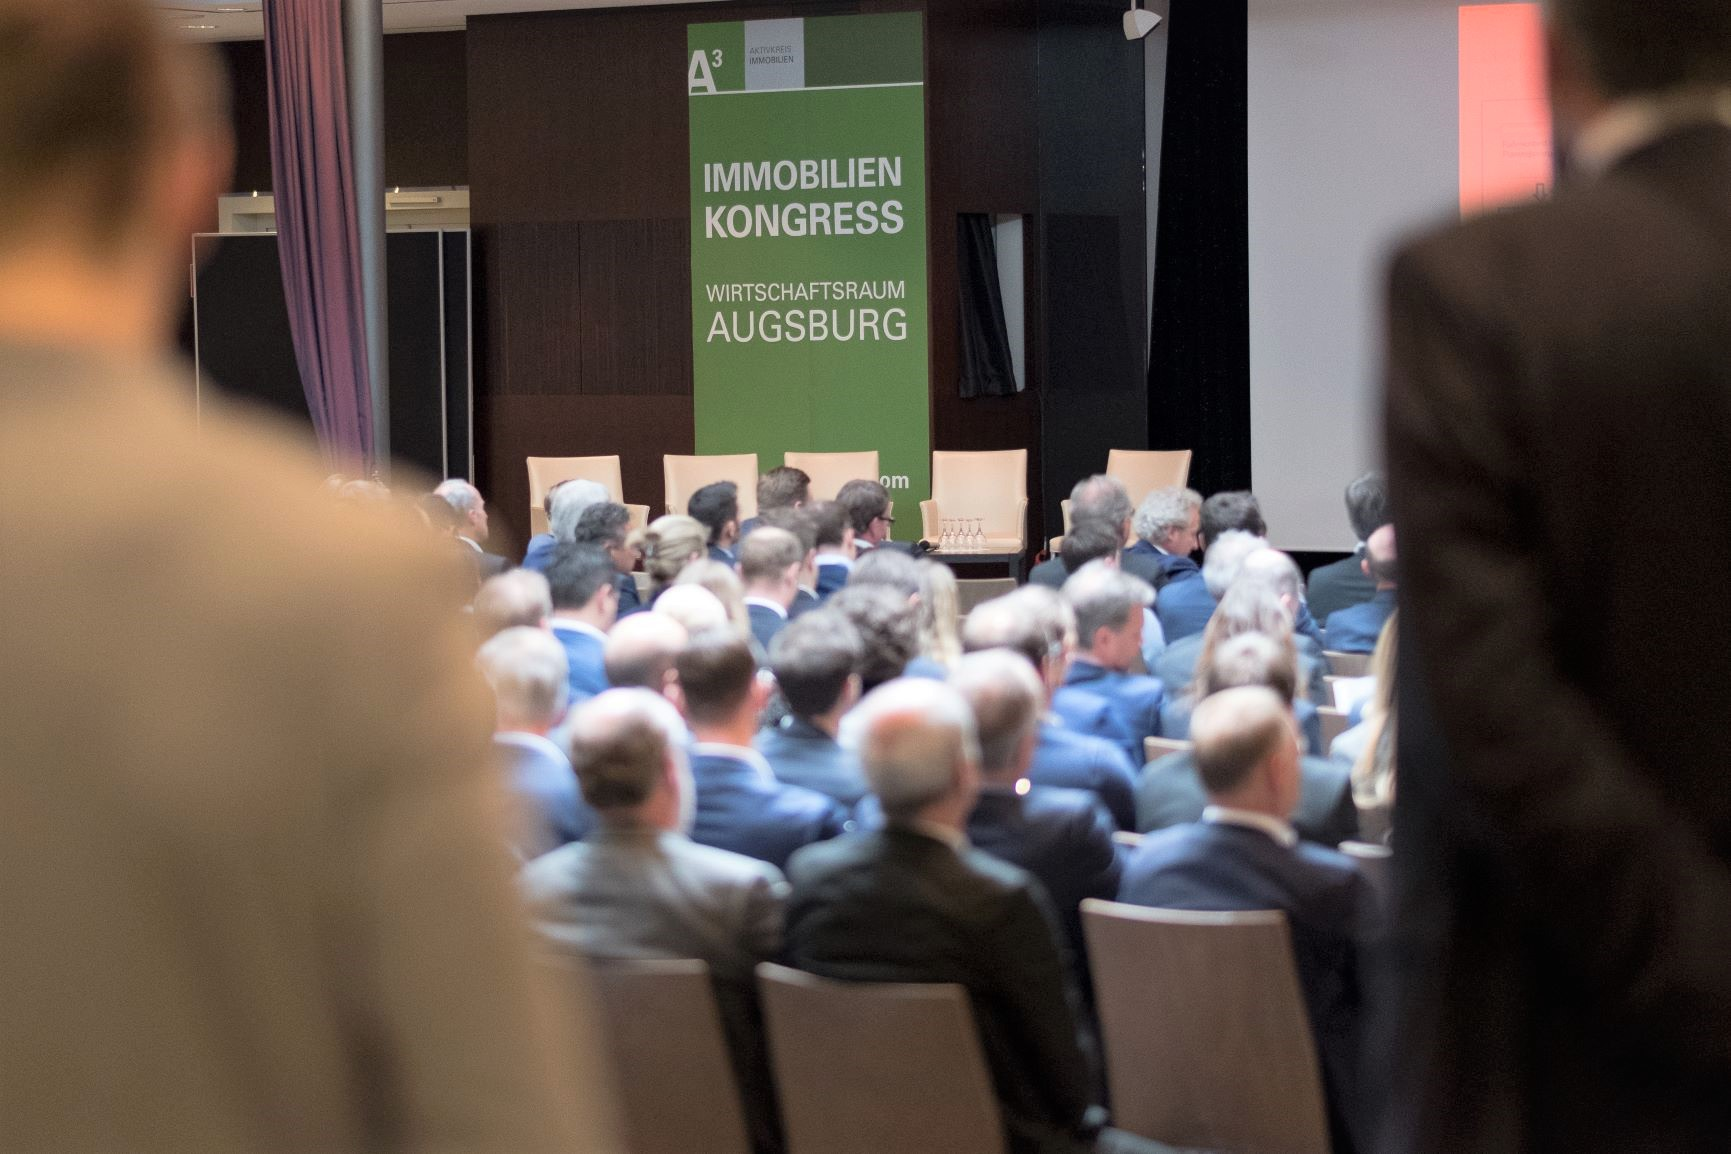 A³ Immobilienkongress 2019